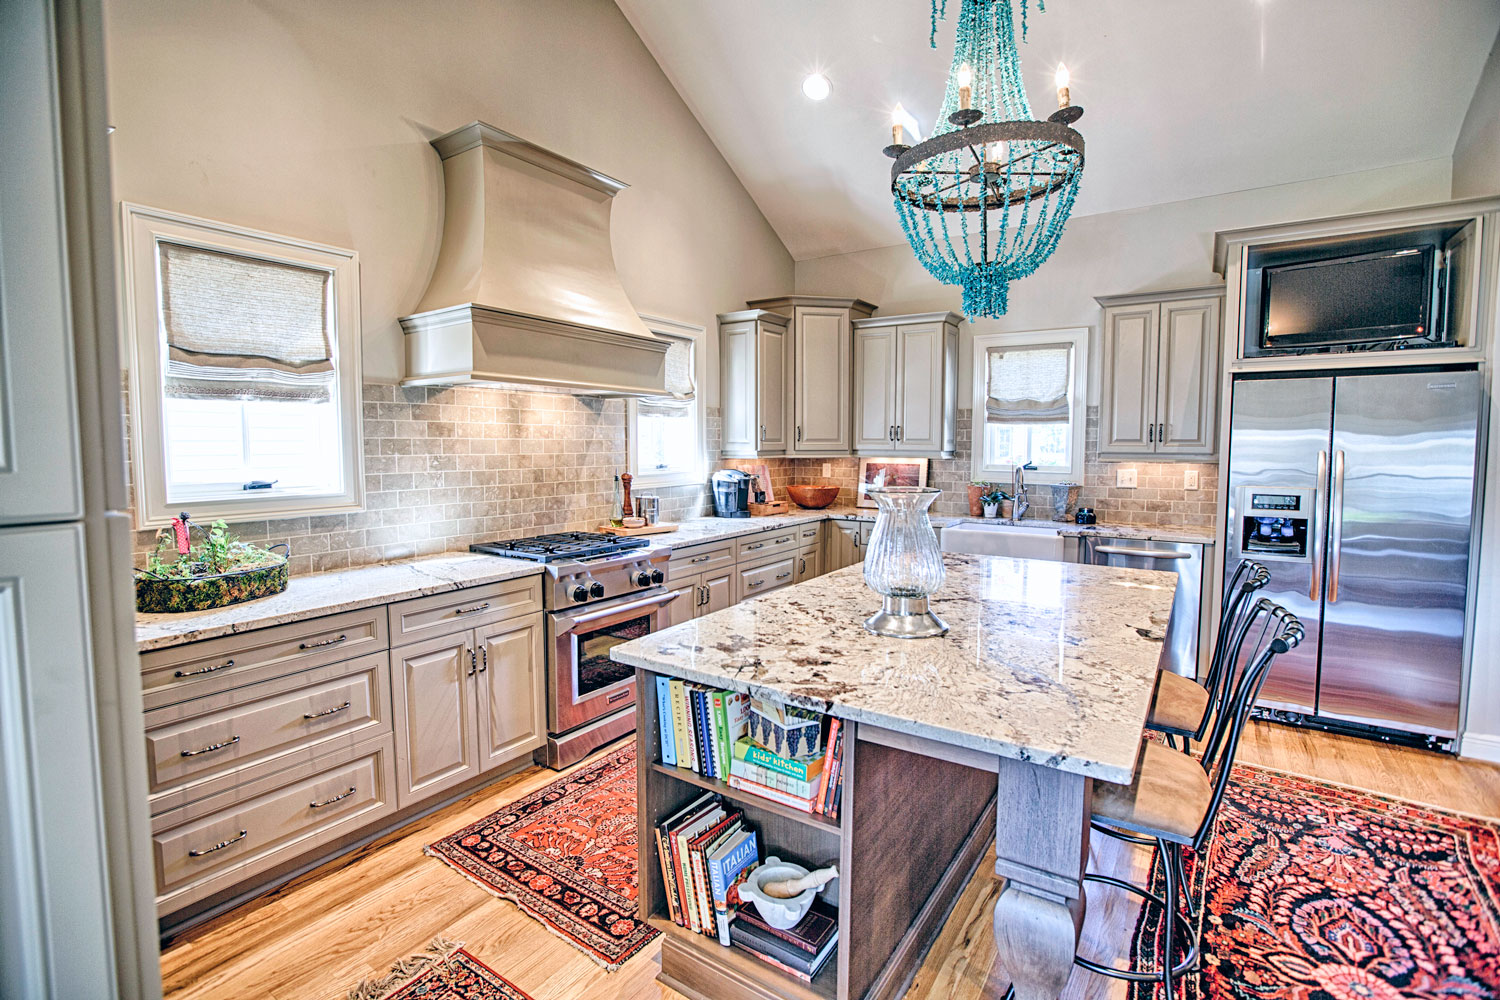 This new kitchen construction was for a single family home in the exclusive master planned community, The Townes of North River in Tuscaloosa Alabama.